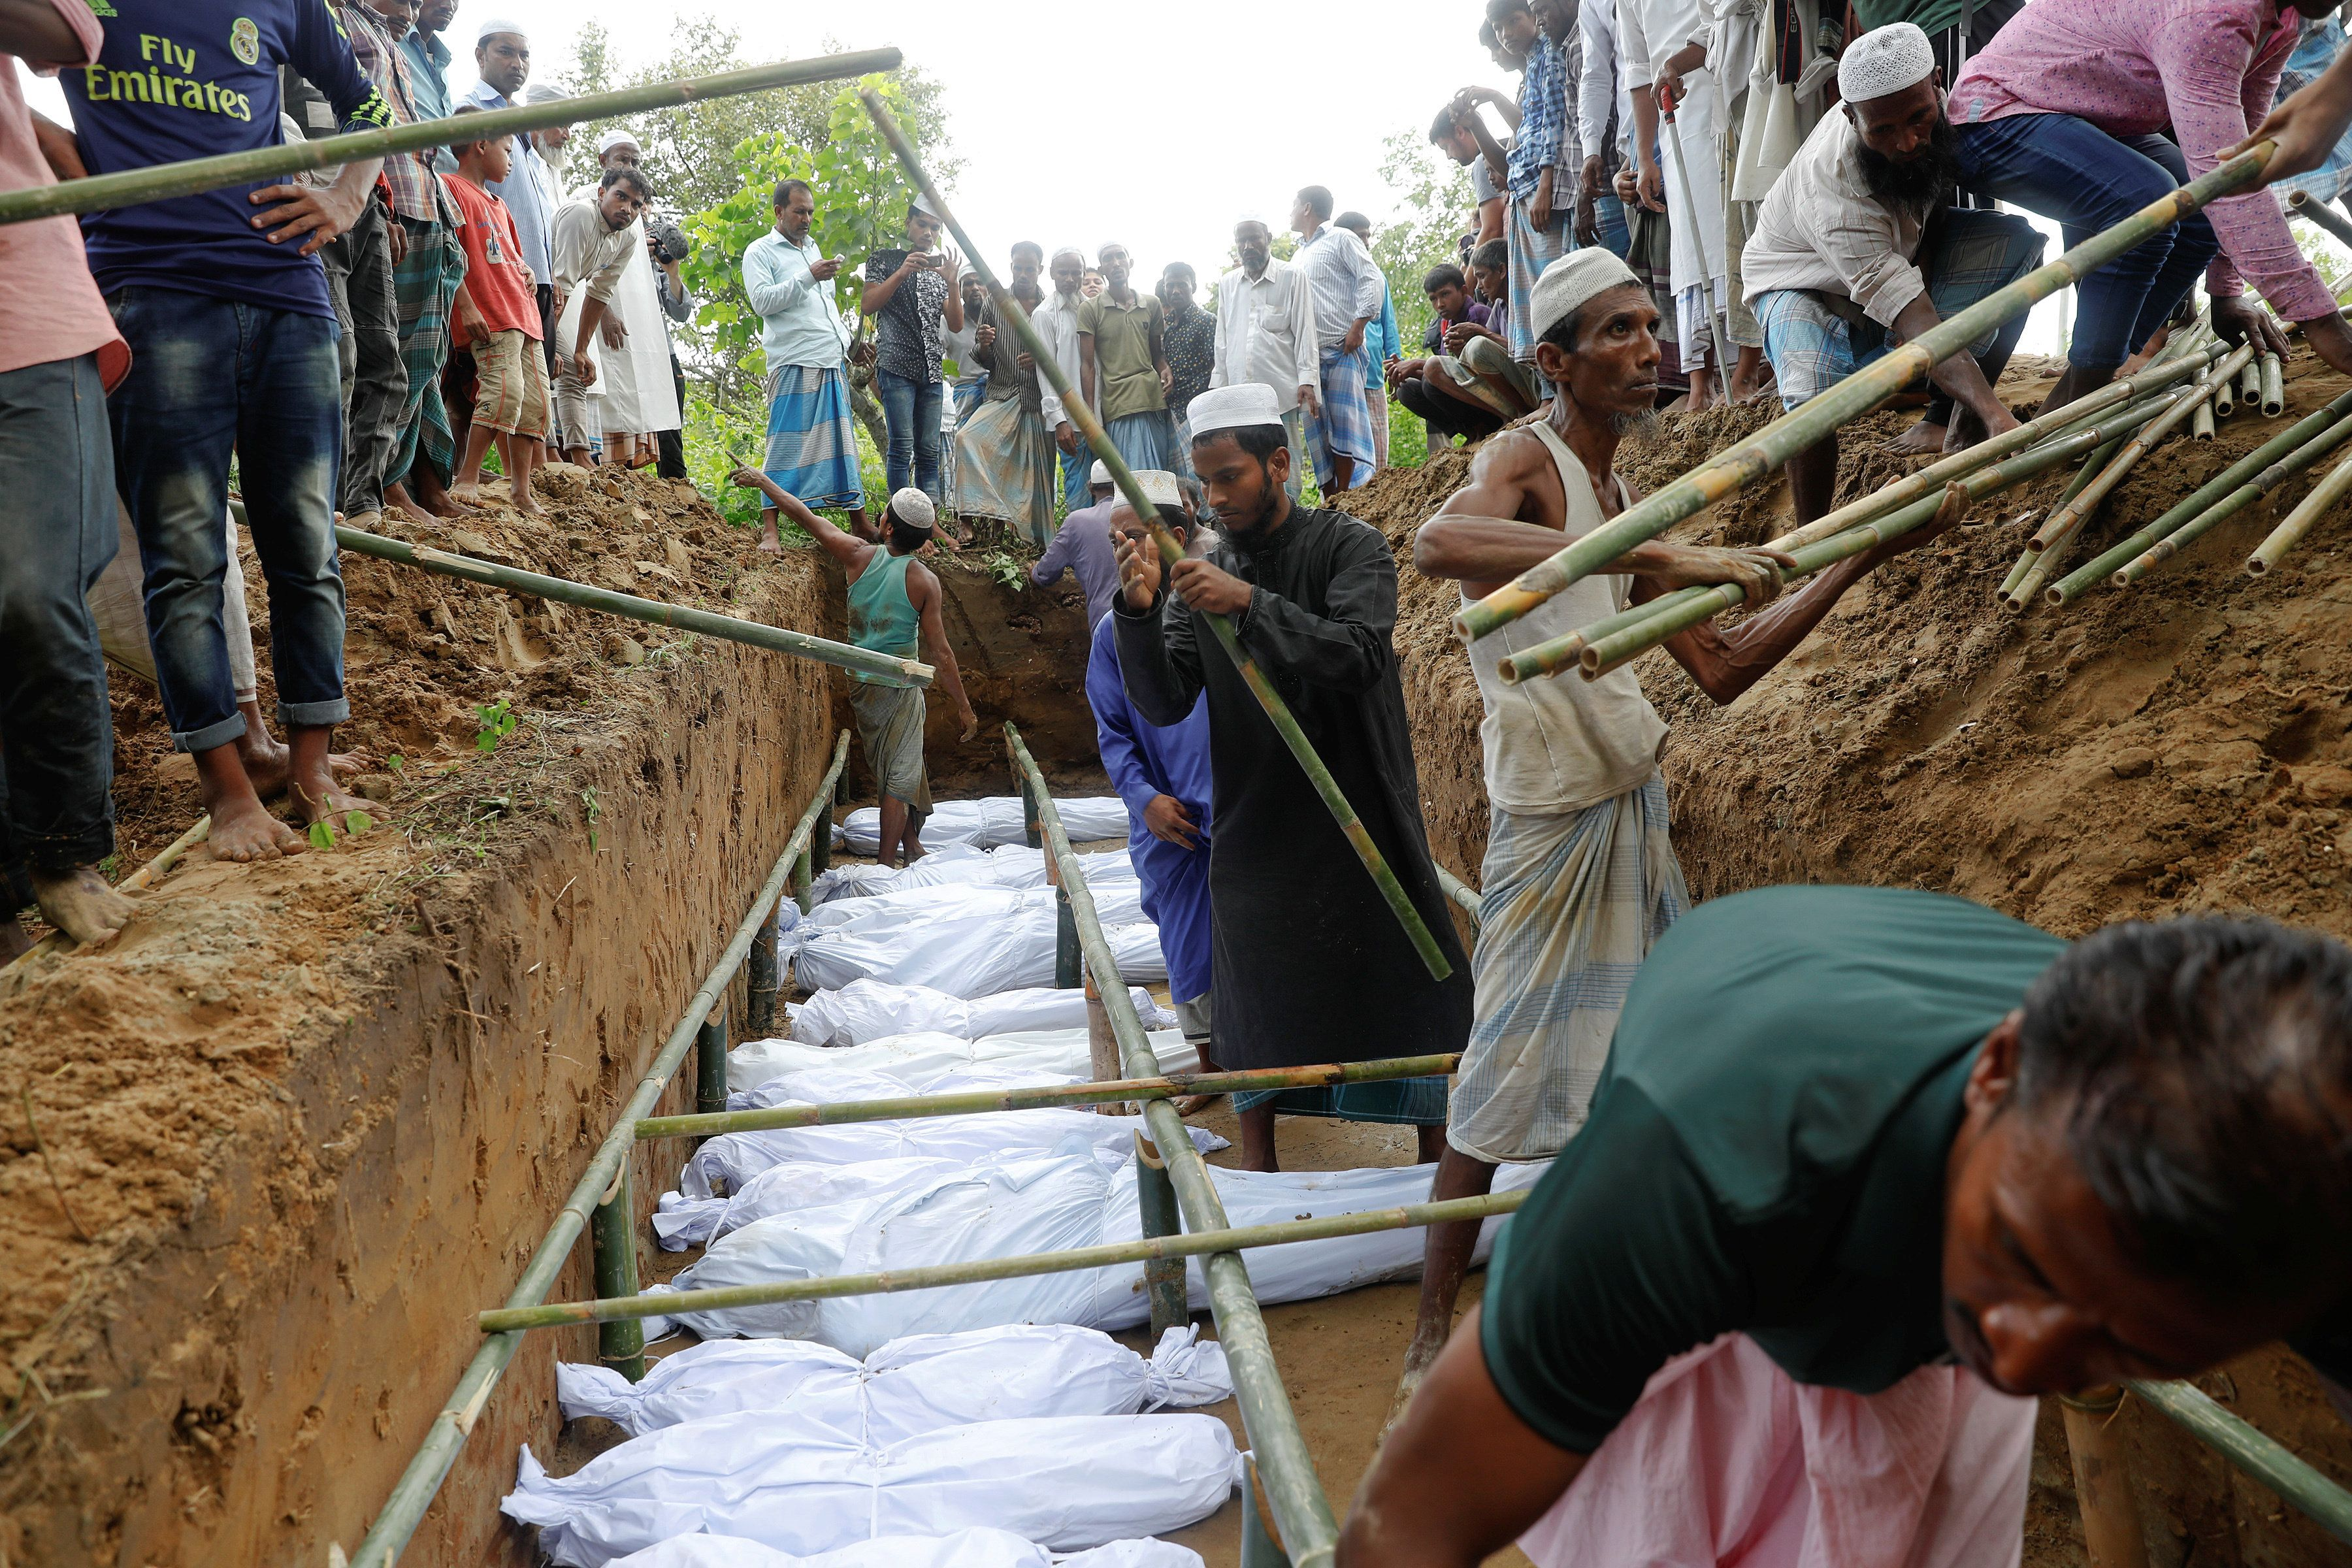 ATTENTION EDITORS - VISUAL COVERAGE OF SCENES OF DEATH Rohingya refugees who died after their boat capsized, as they were fleeing Myanmar, are buried in a mass grave just behind Inani Beach near Cox's Bazar, Bangladesh September 29, 2017. REUTERS/Damir Sagolj